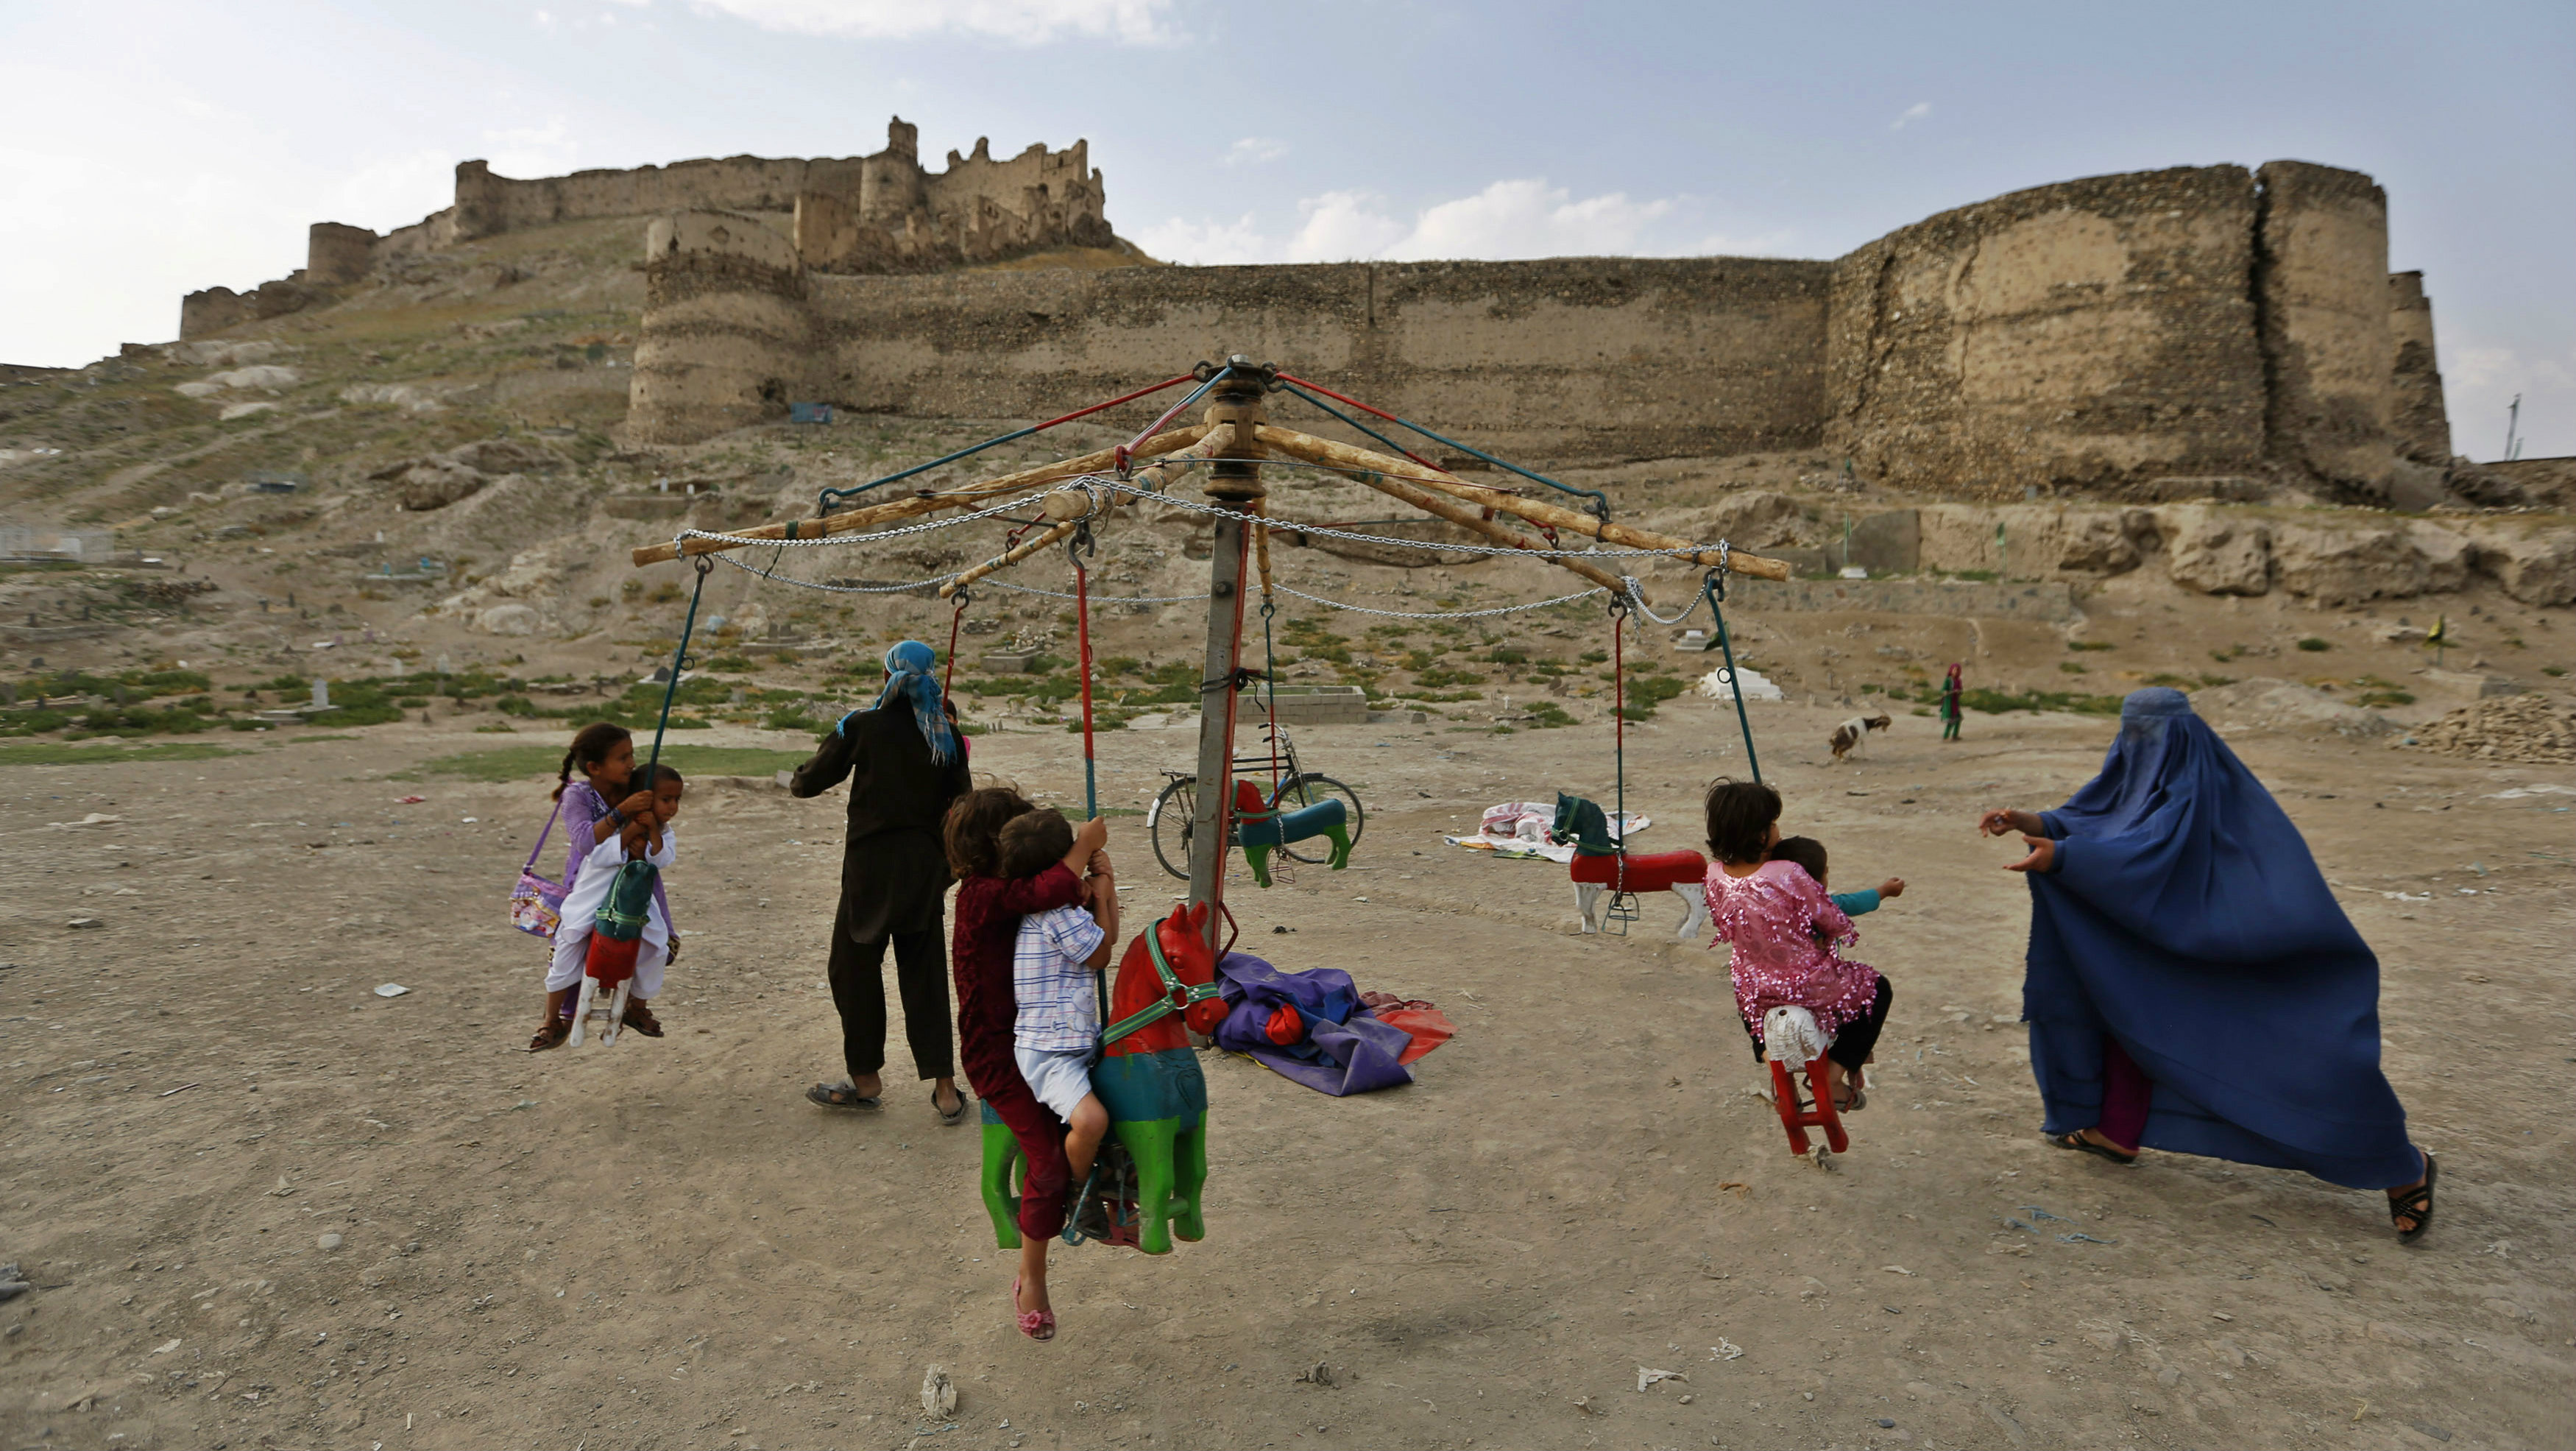 Children play on a carnival ride during Eid al-Fitr Holiday in Kabul July 31, 2014. The Eid al-Fitr festival marks the end of the Muslim holy fasting month of Ramadan.